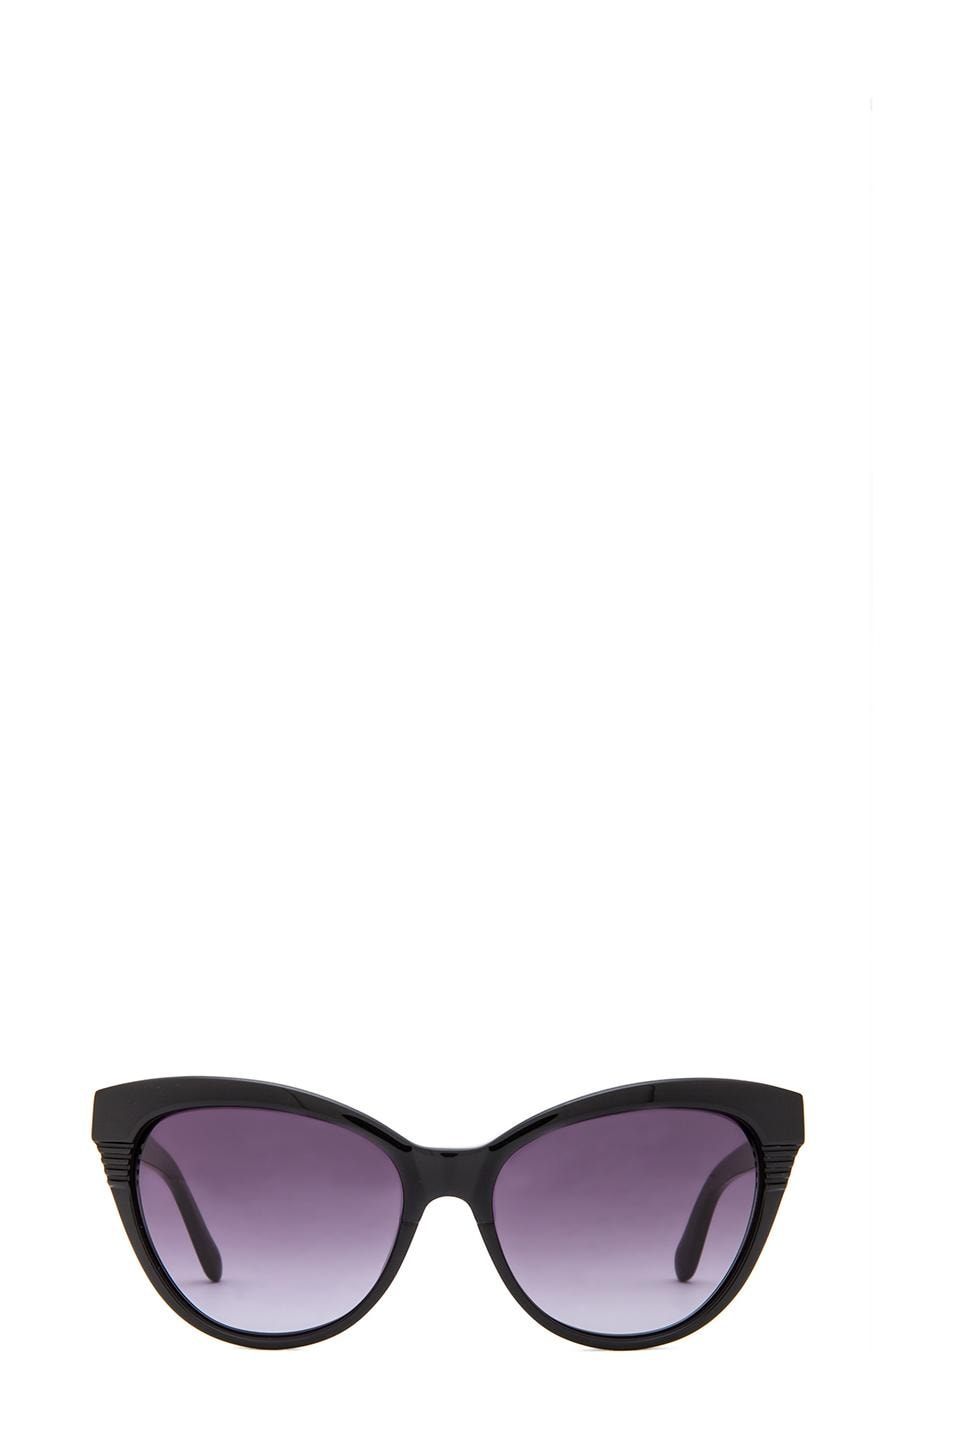 Marc by Marc Jacobs Marc by Marc Jacobs Soft Cat Eye Sunglasses in Black